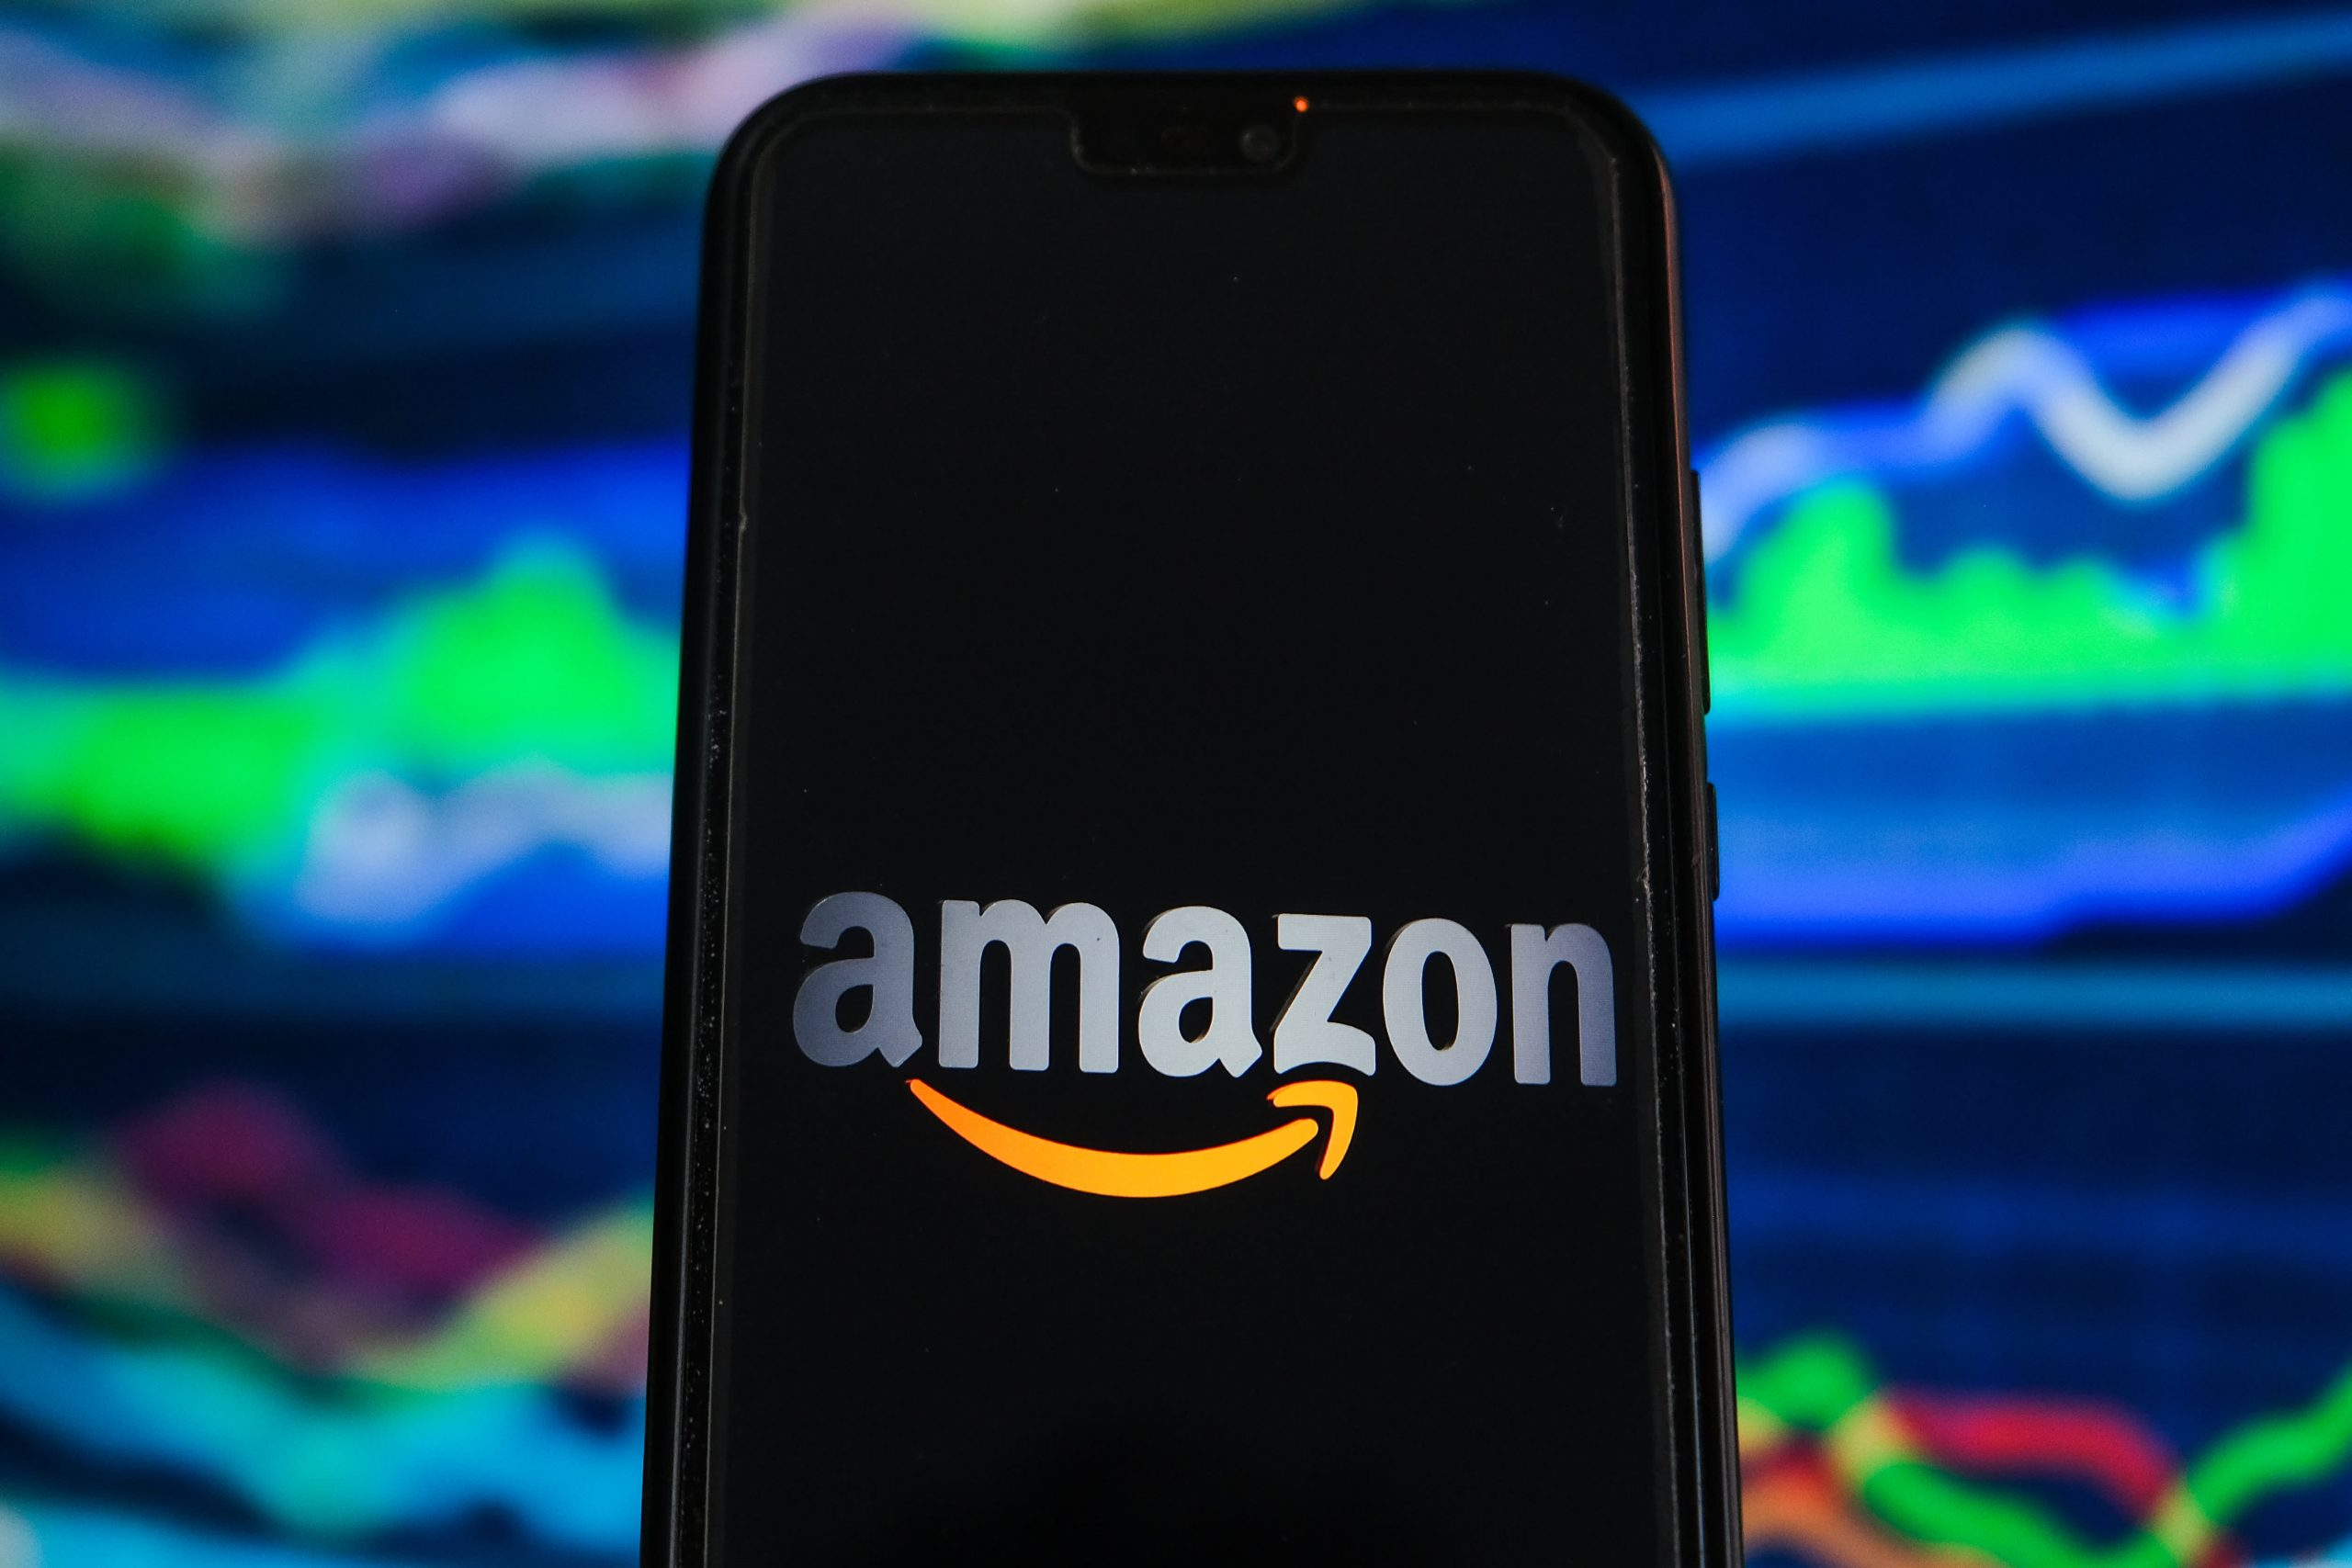 Stocks making the biggest moves midday: Amazon, P&G, Caterpillar and more